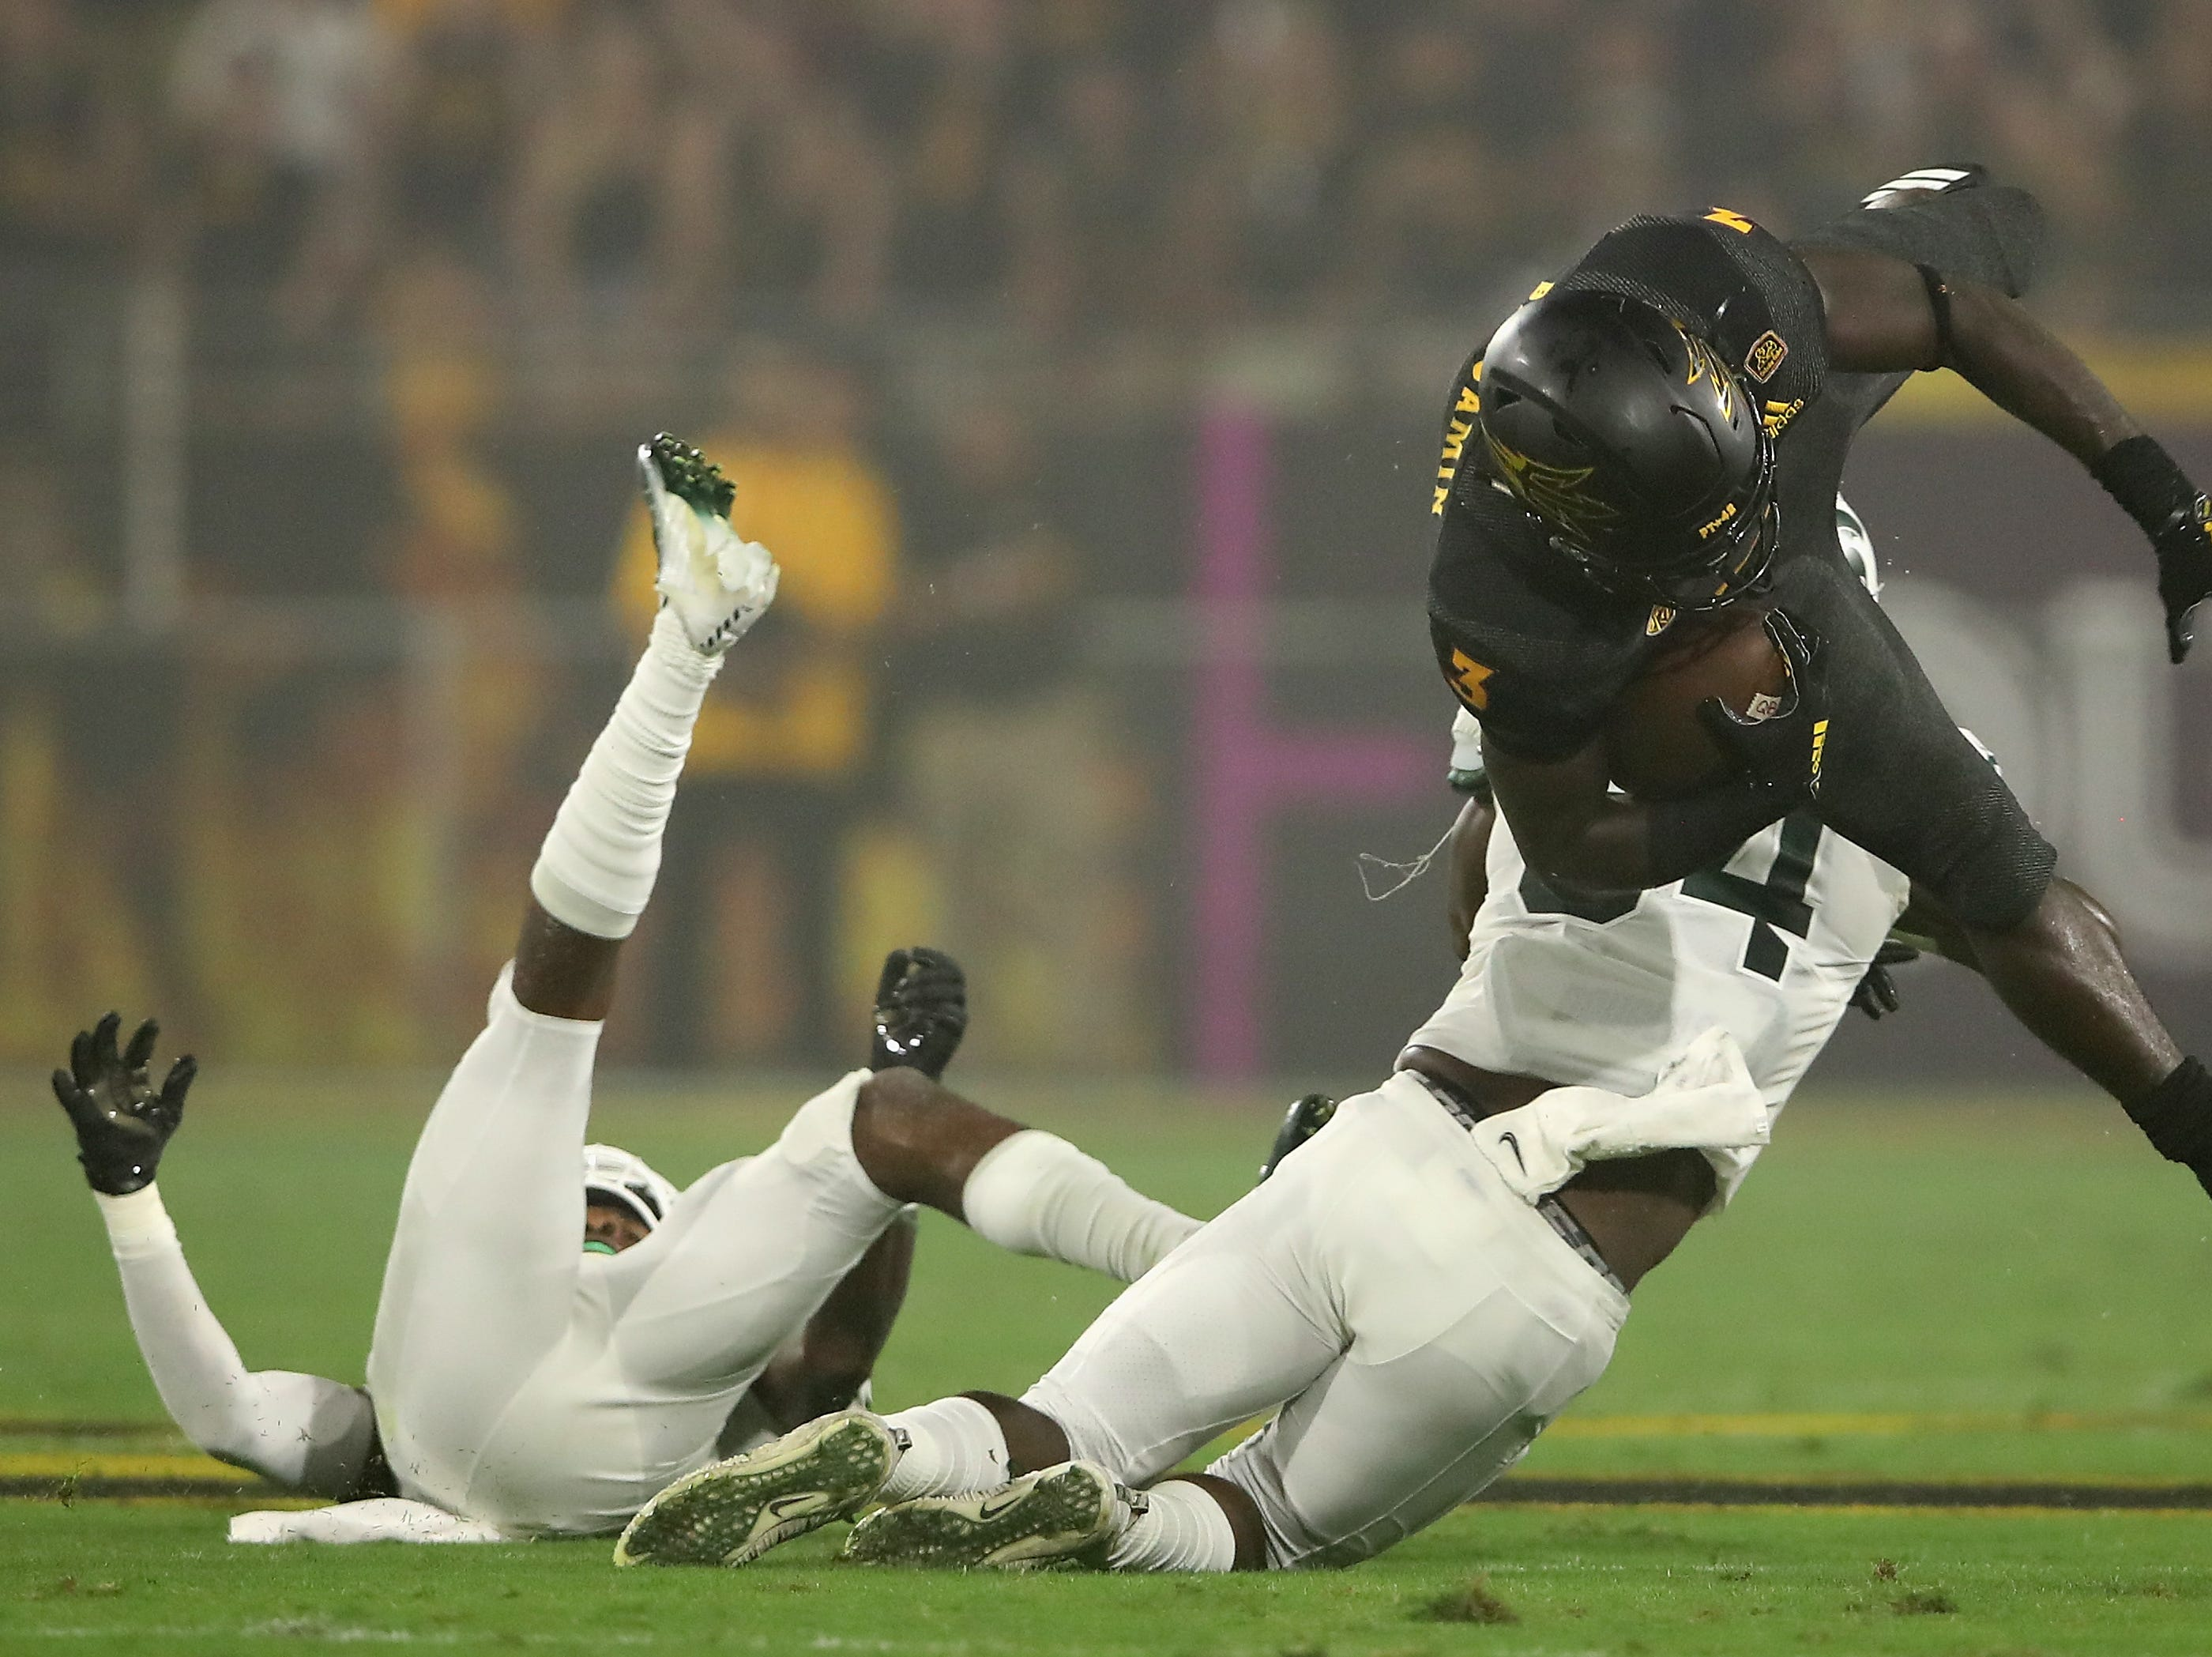 Running back Eno Benjamin #3 of the Arizona State Sun Devils is tackled by linebacker Antjuan Simmons #34 of the Michigan State Spartans during the first half of the college football game at Sun Devil Stadium on September 8, 2018 in Tempe, Arizona.